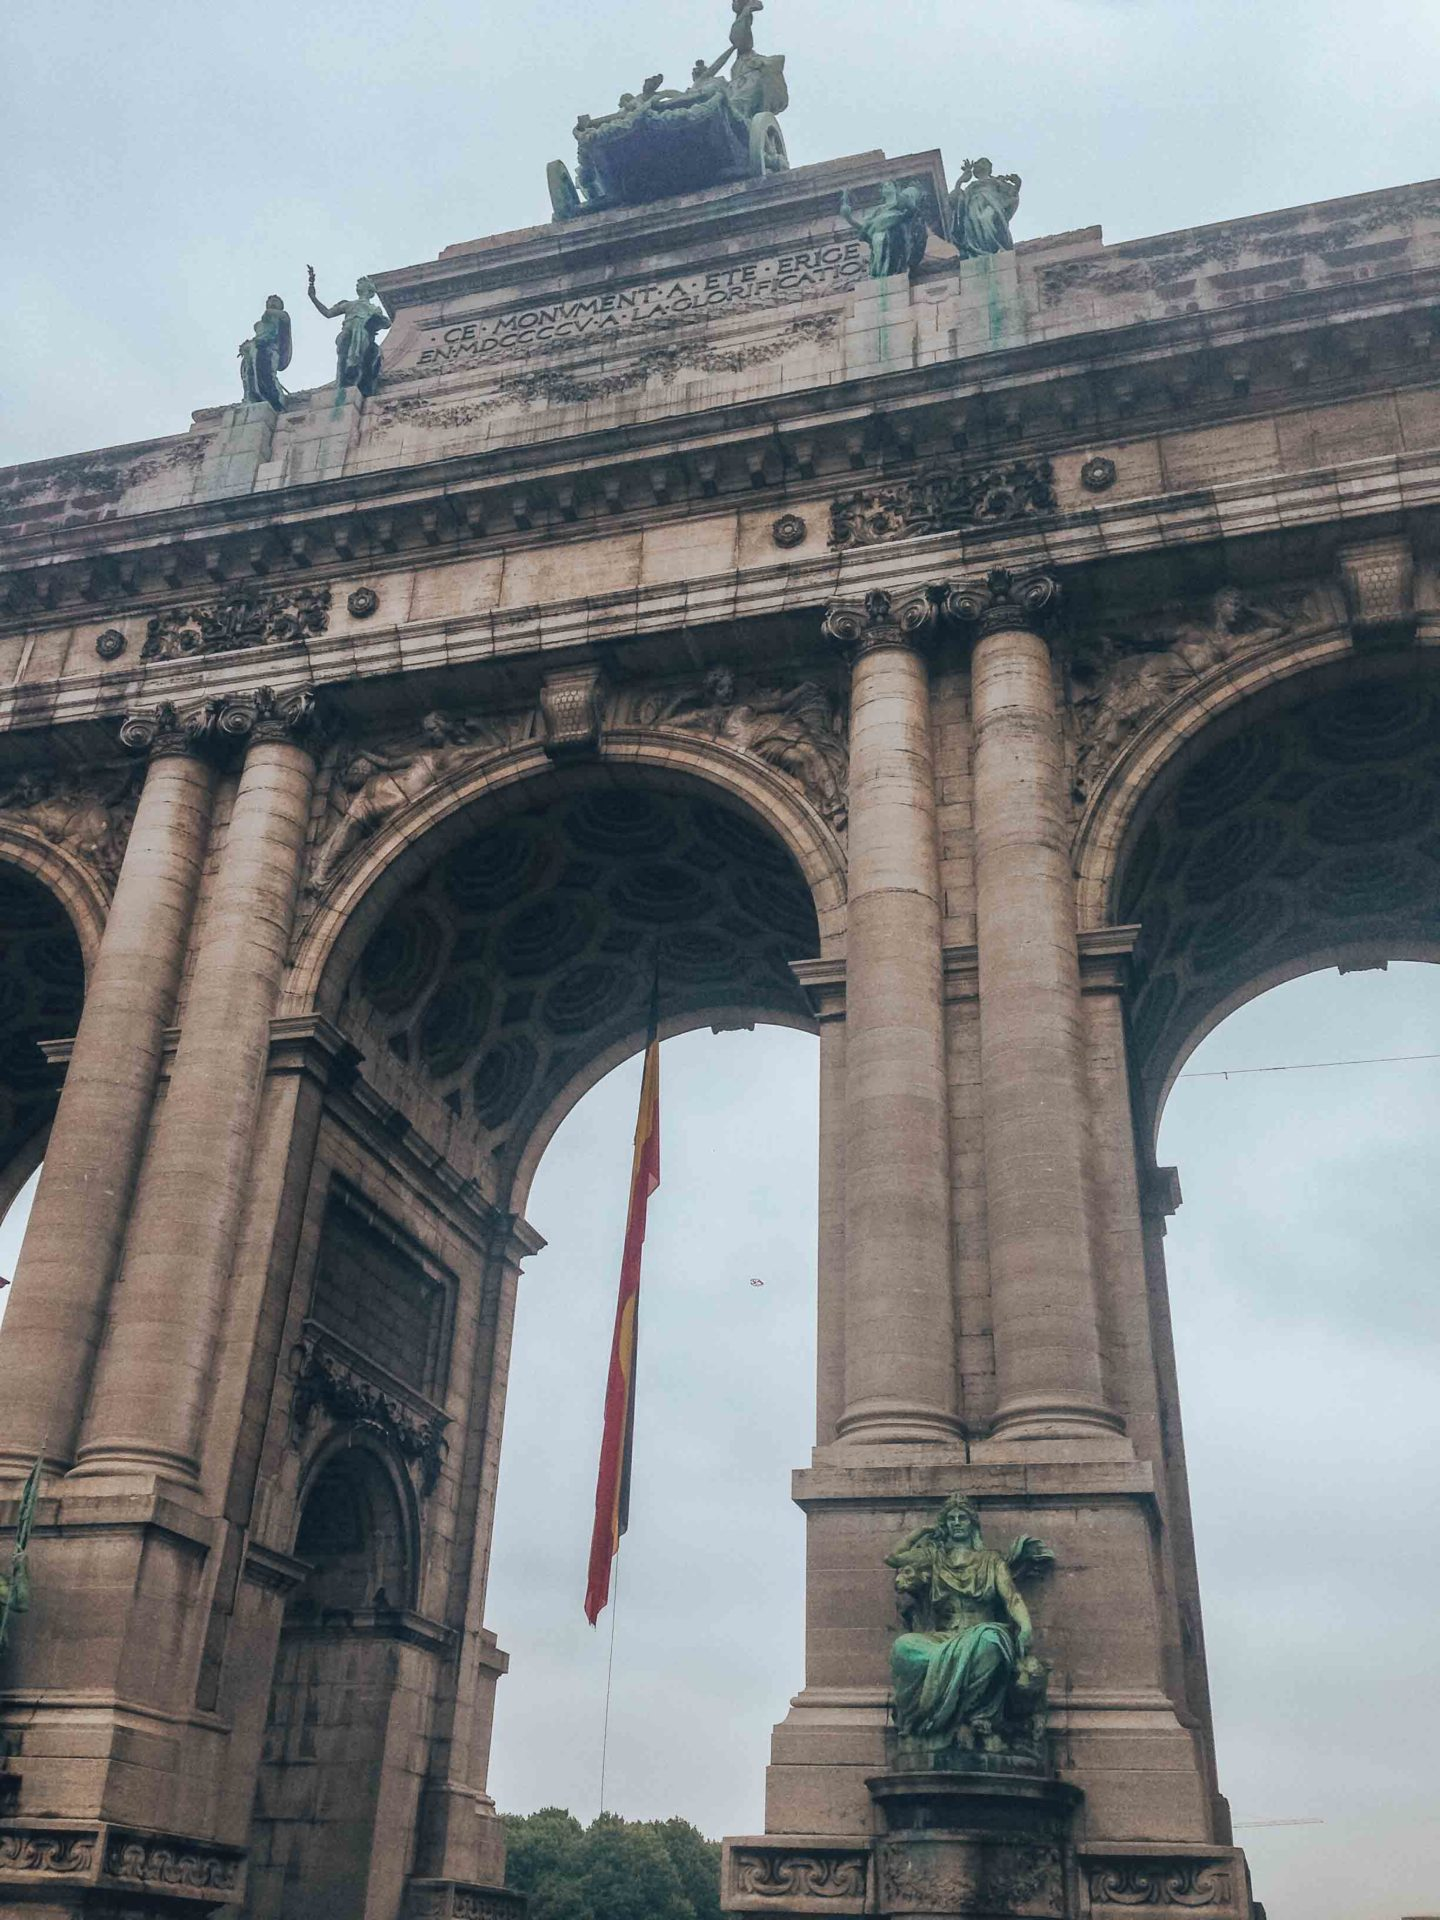 The arch of Cinquantenaire park in Brussels